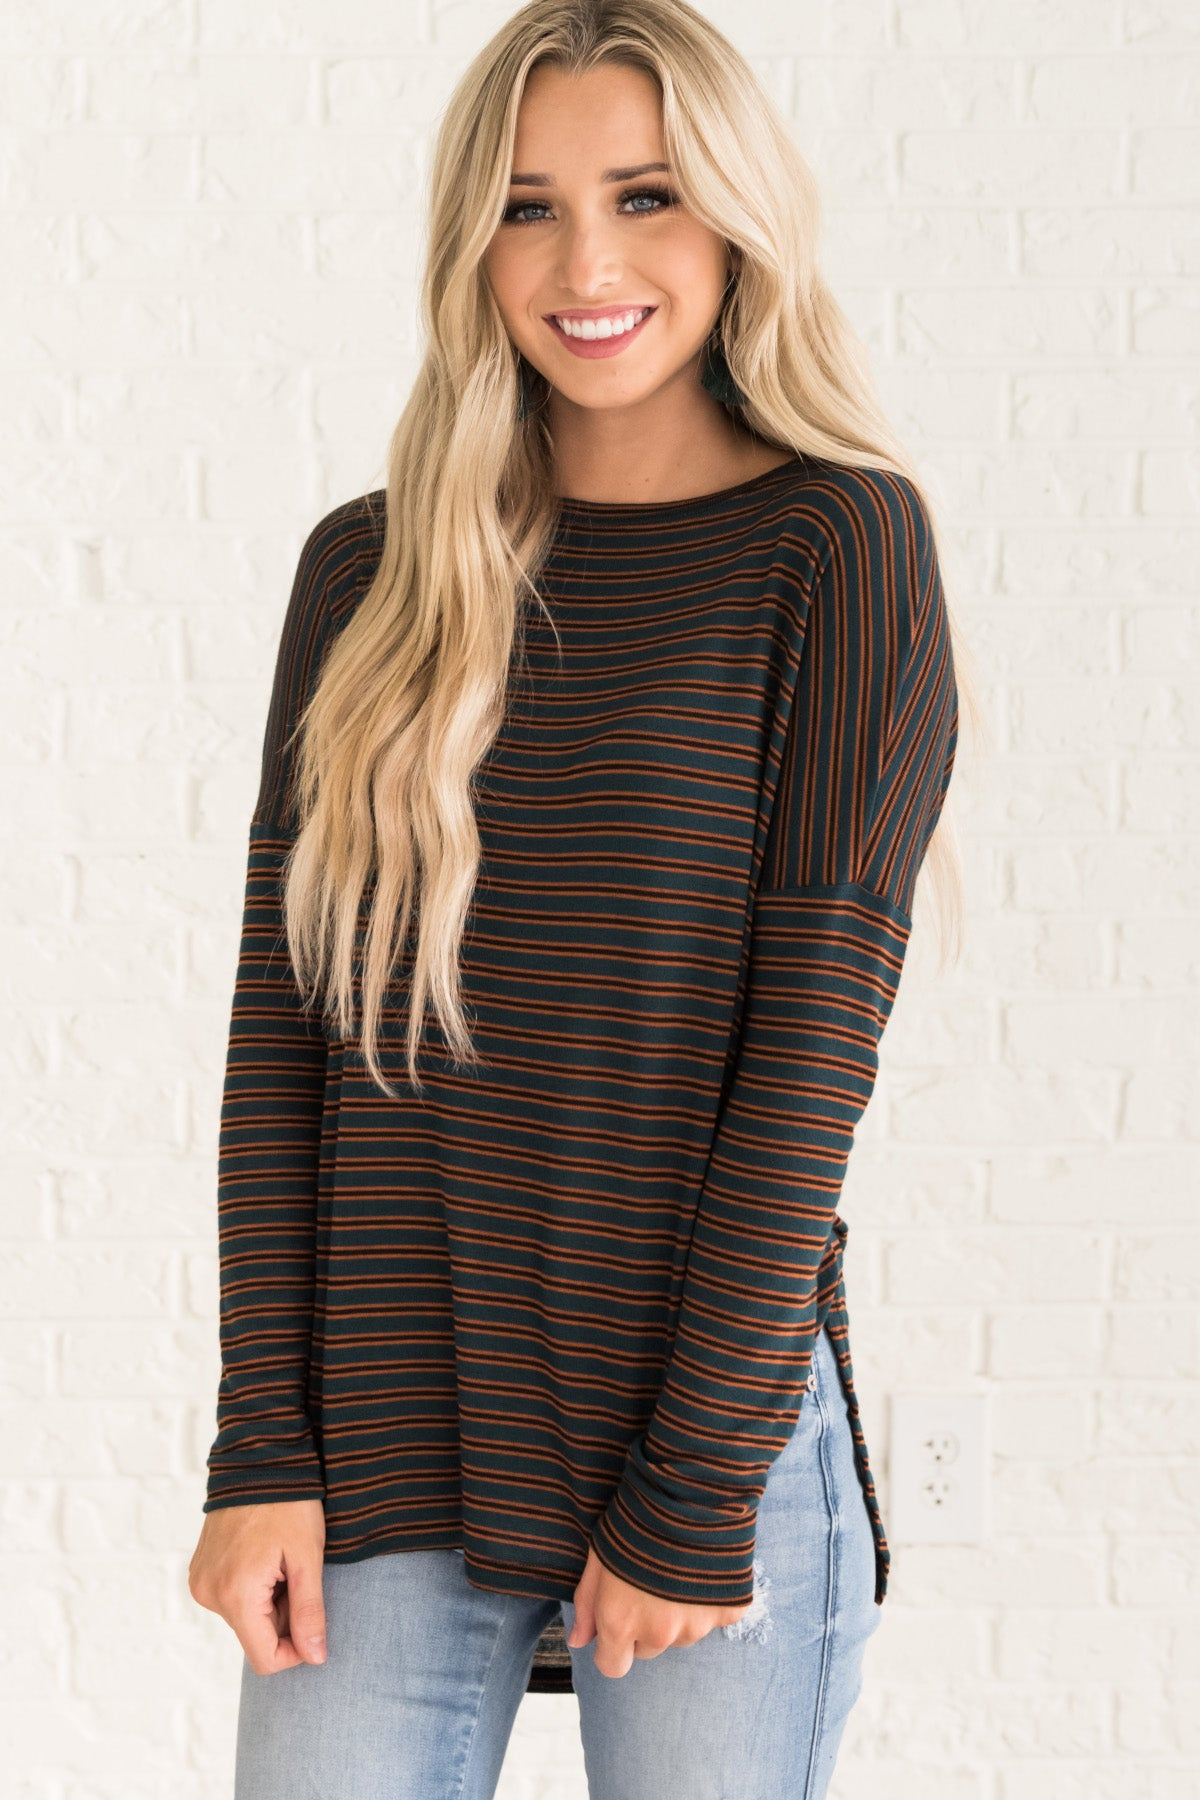 Green Orange Black Striped Oversized Soft Long Sleeve Tops